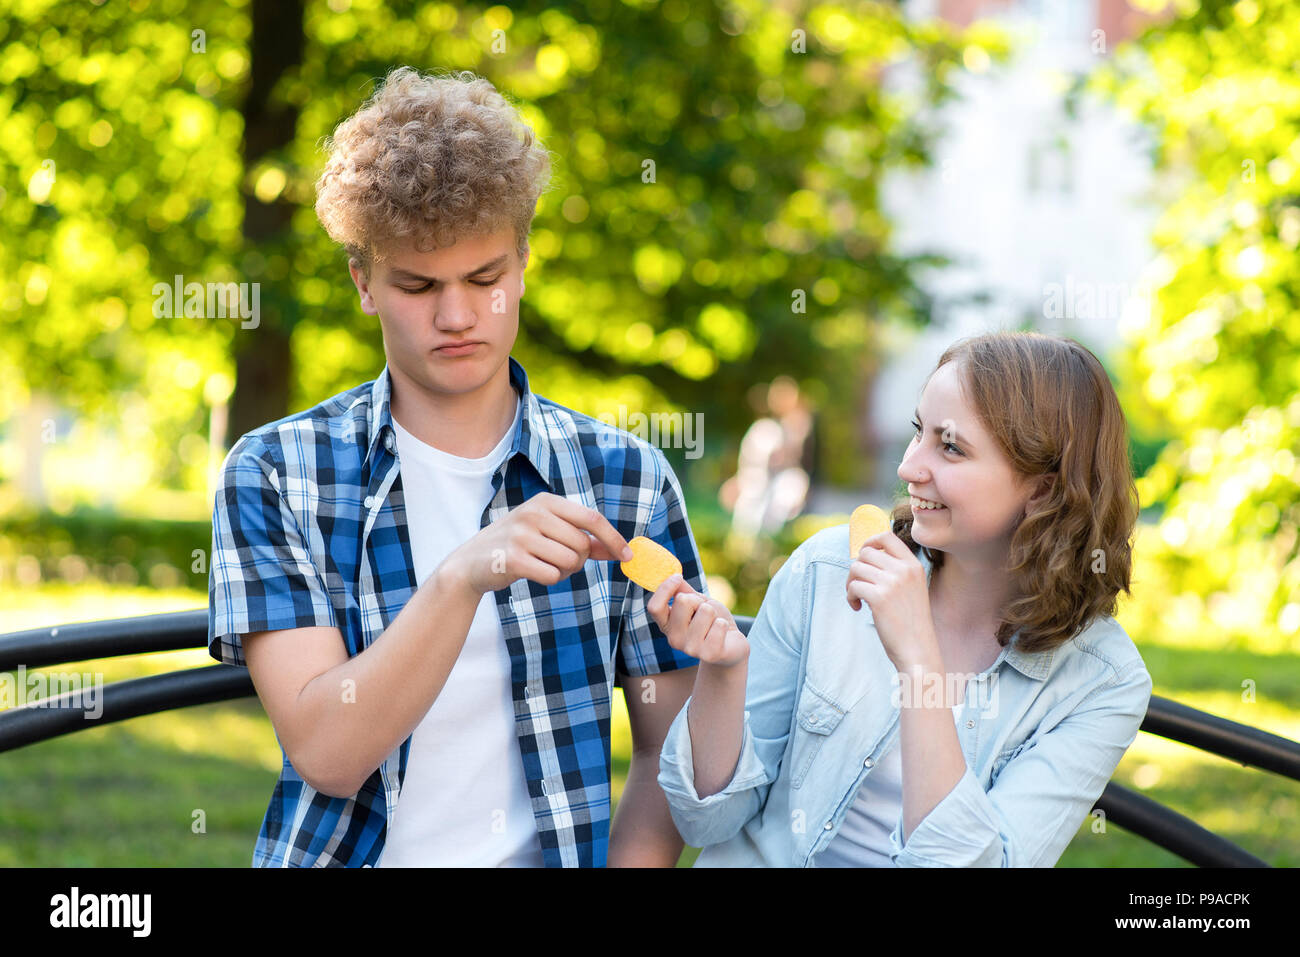 Young students in summer in a park outdoors. They sit on a bench in the city. Girl and happy smiling gives food to guy. The guy is embarrassed. The concept of mistrust. Emotion of kindness. Stock Photo